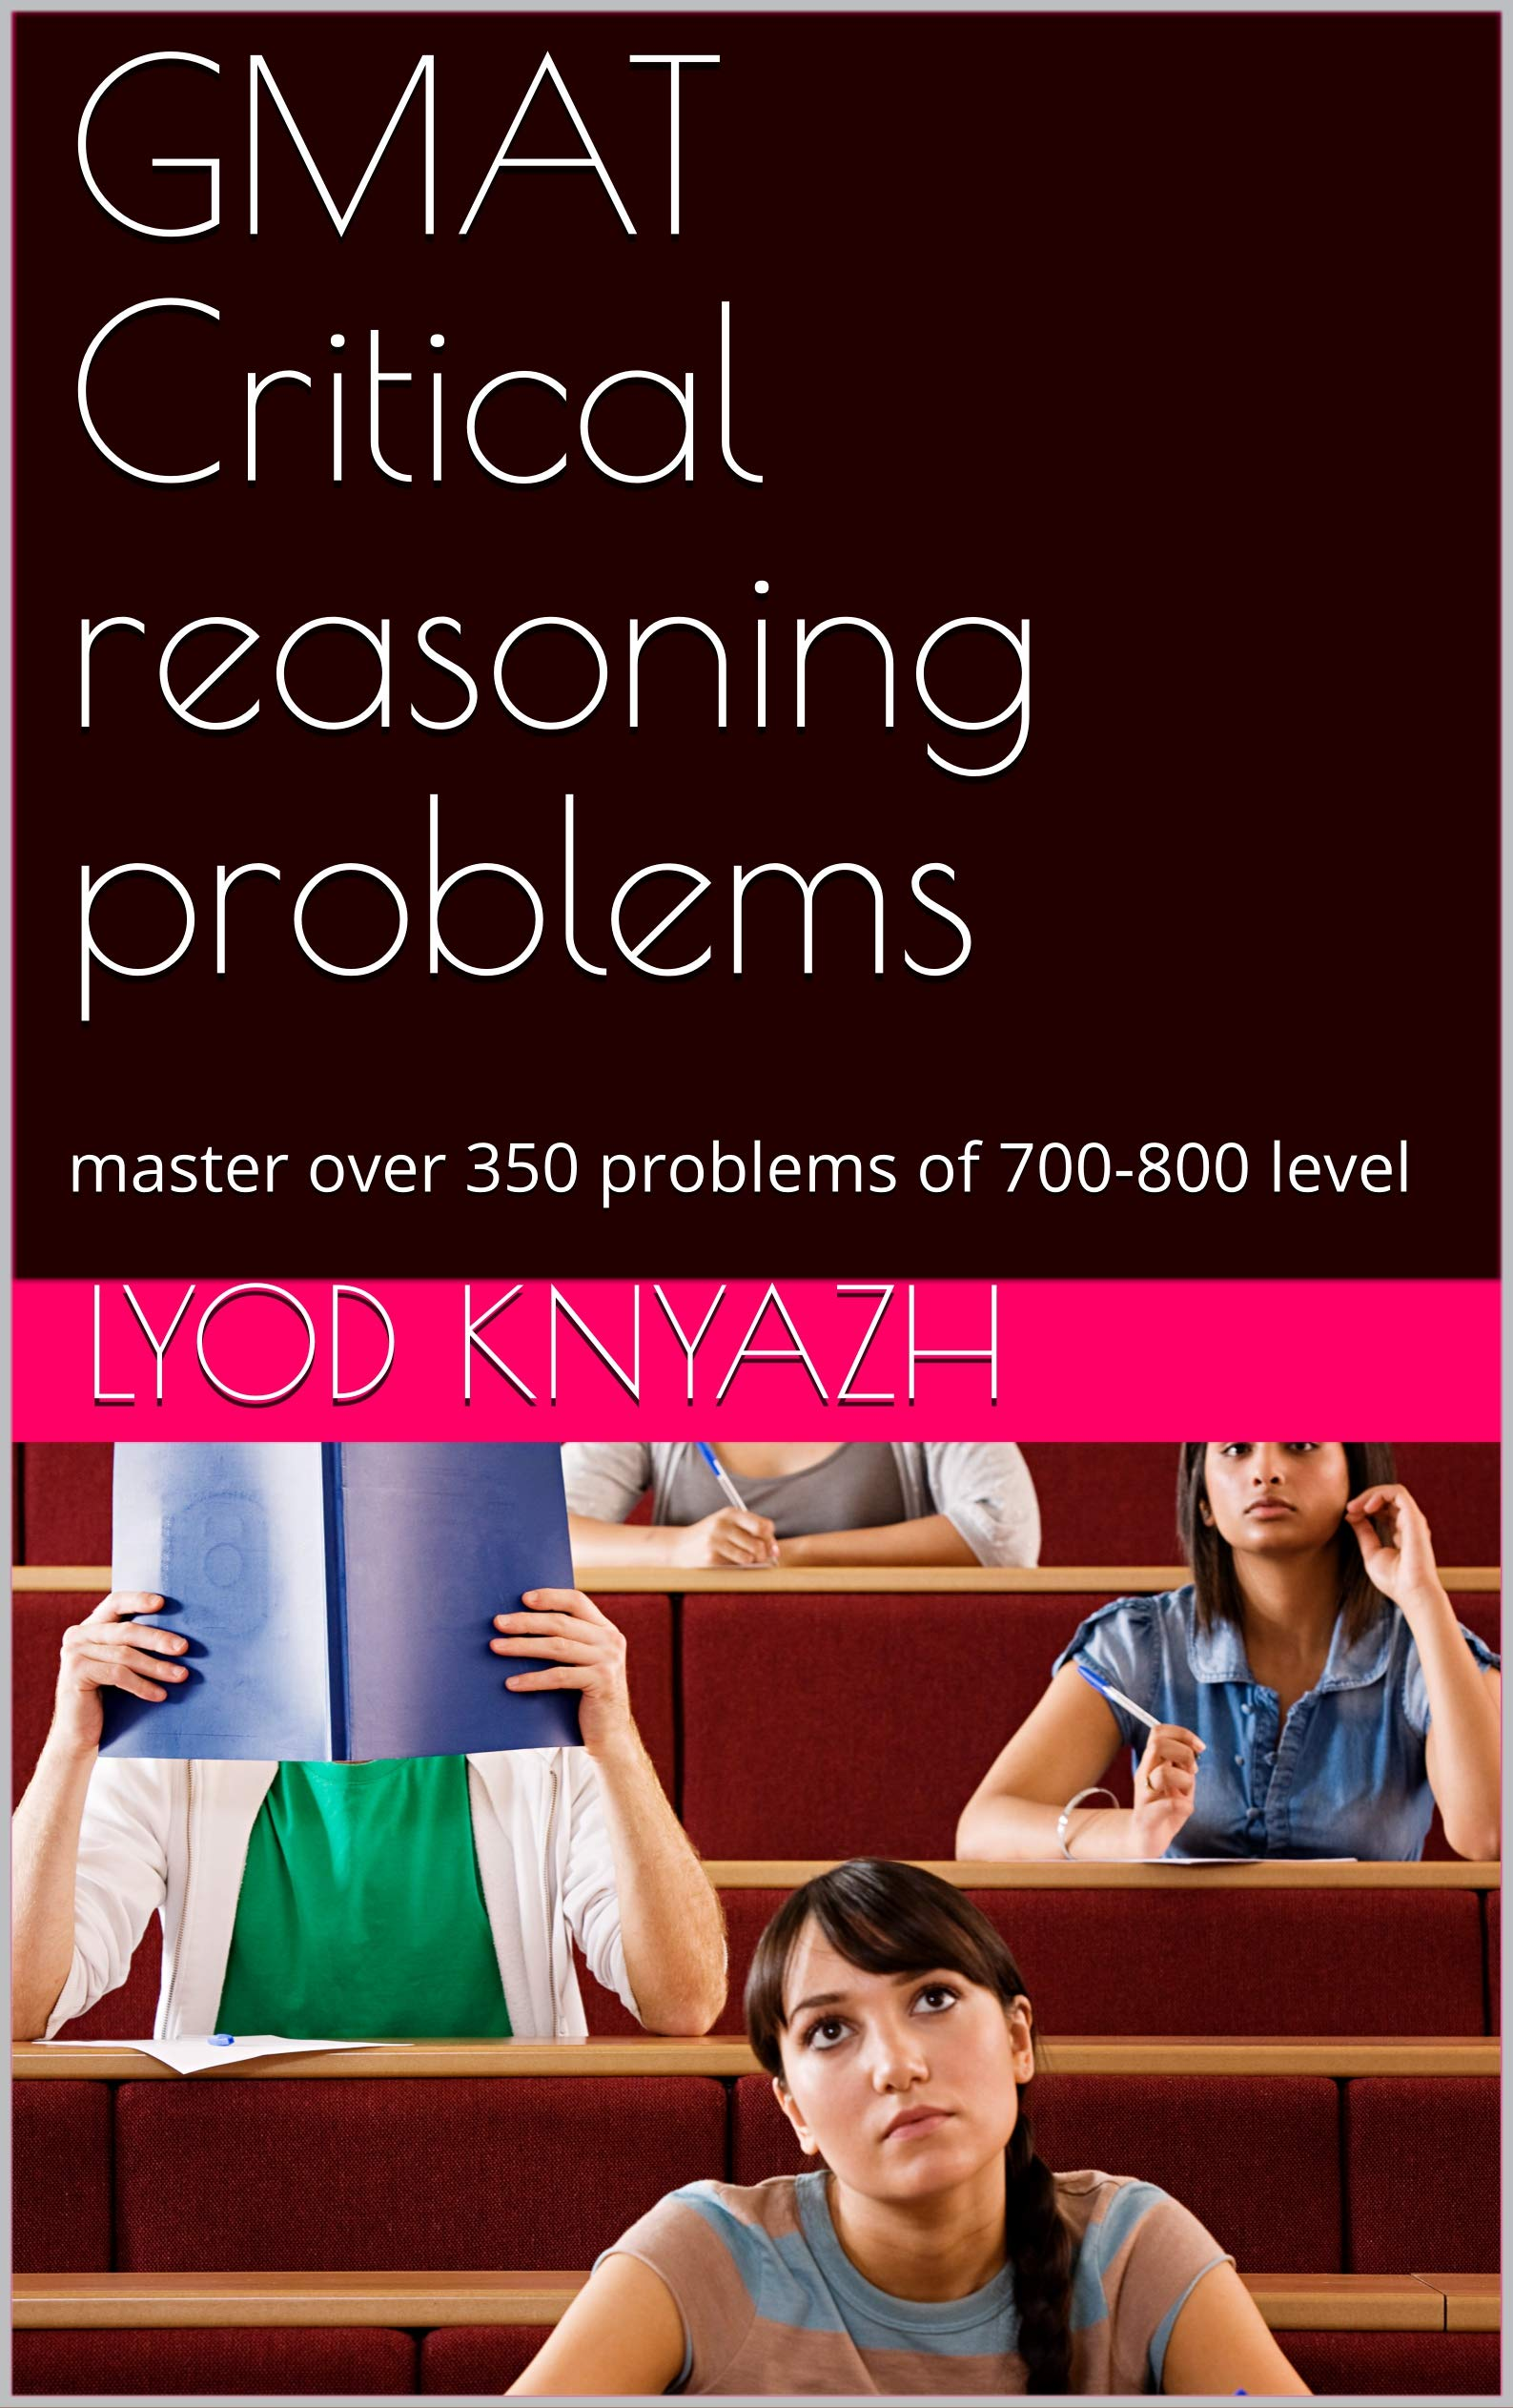 GMAT Critical reasoning problems: master over 350 problems of 700-800 level